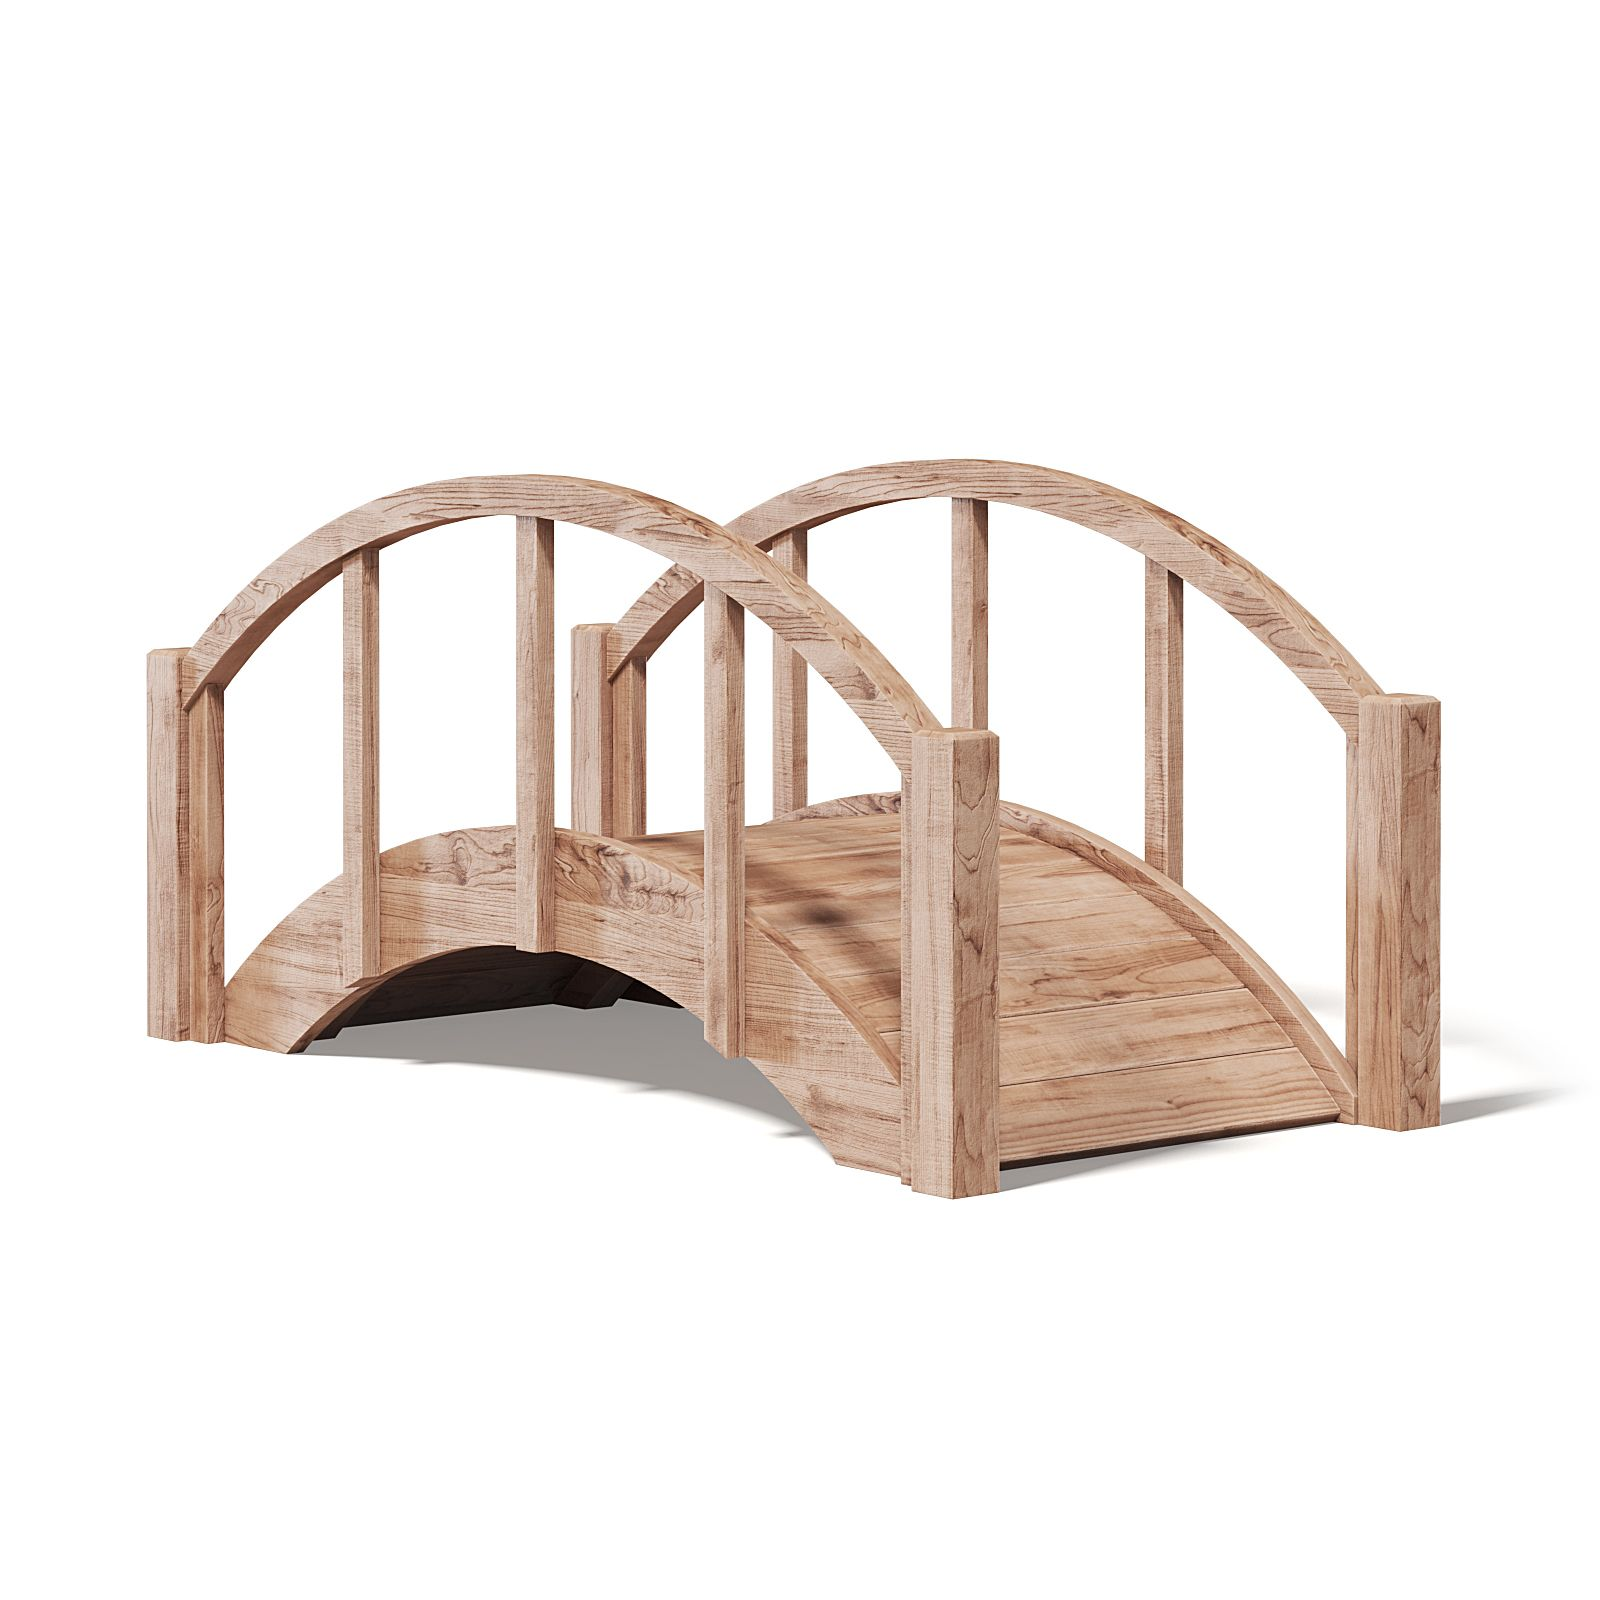 Small Wooden Bridge 3d Model Wooden Small Model Bridge